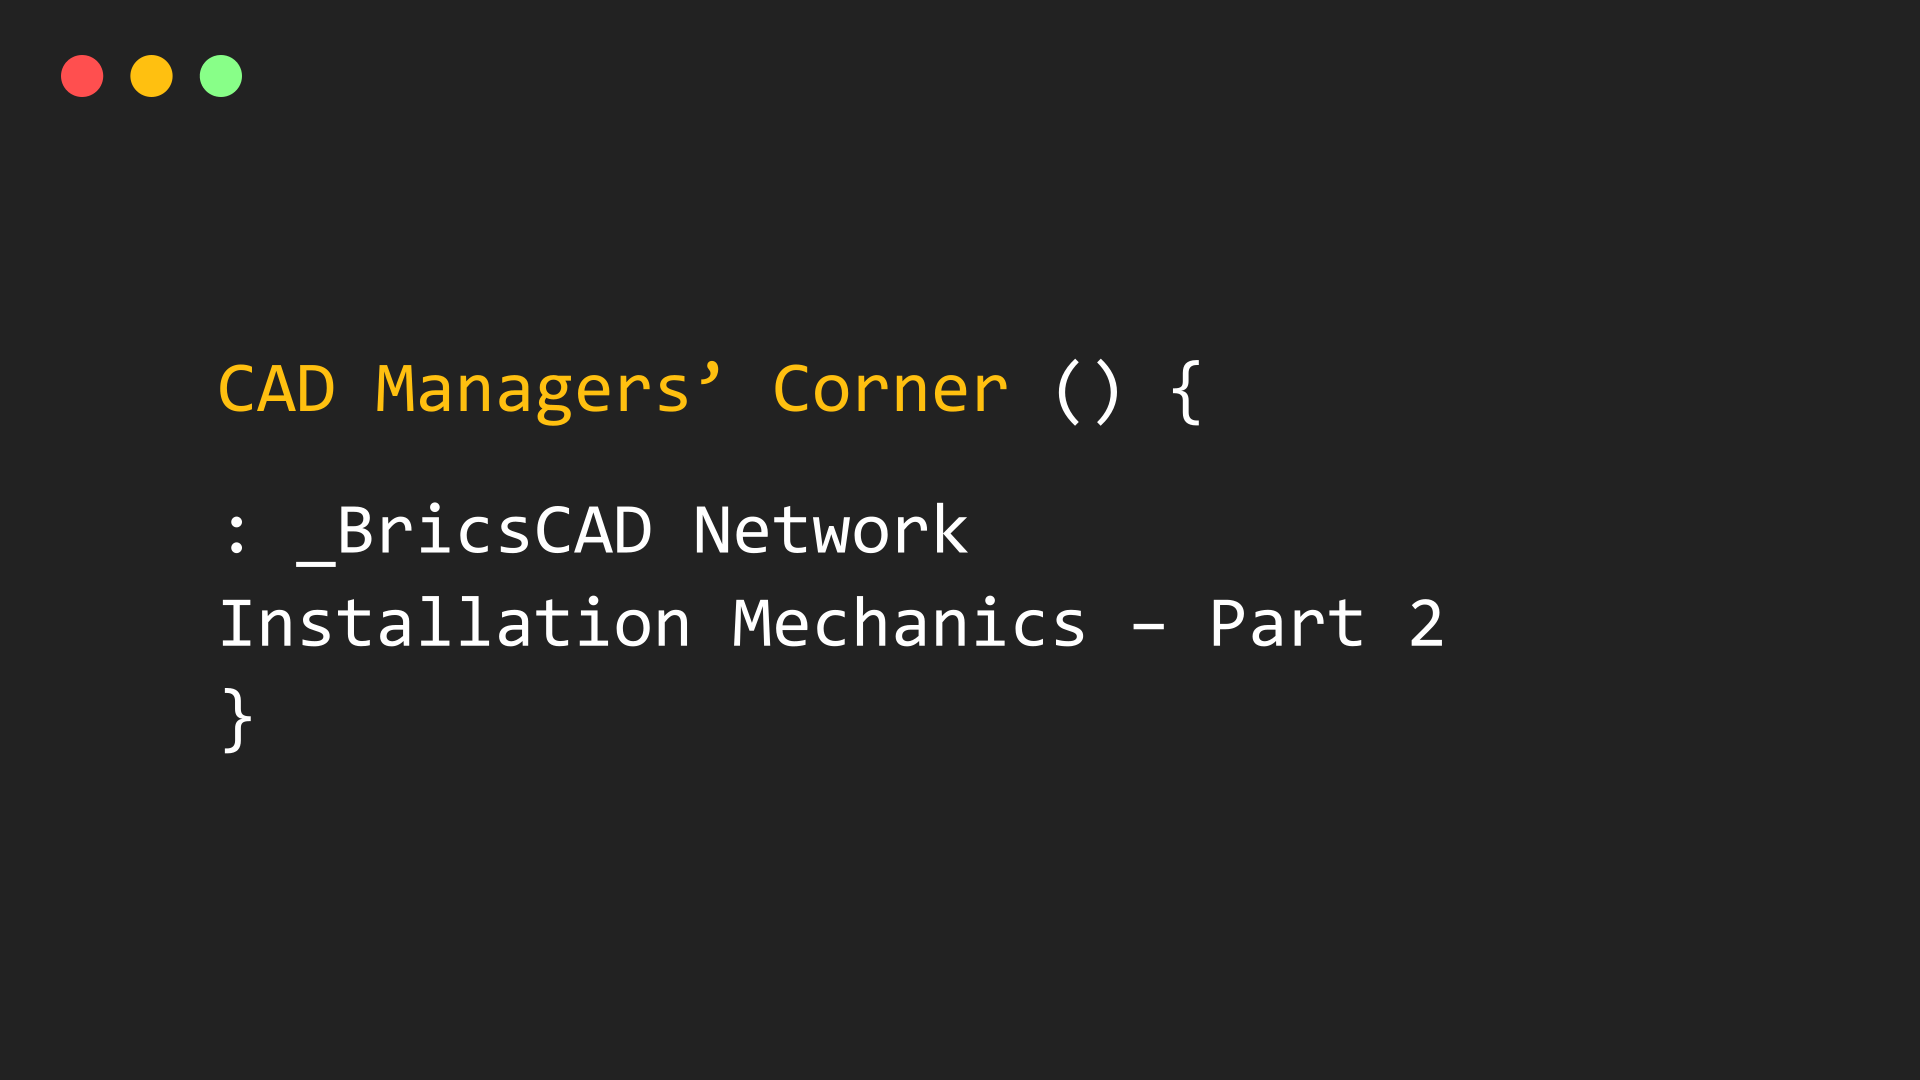 CAD Managers' Corner – BricsCAD® Network Installation Mechanics – Part 2